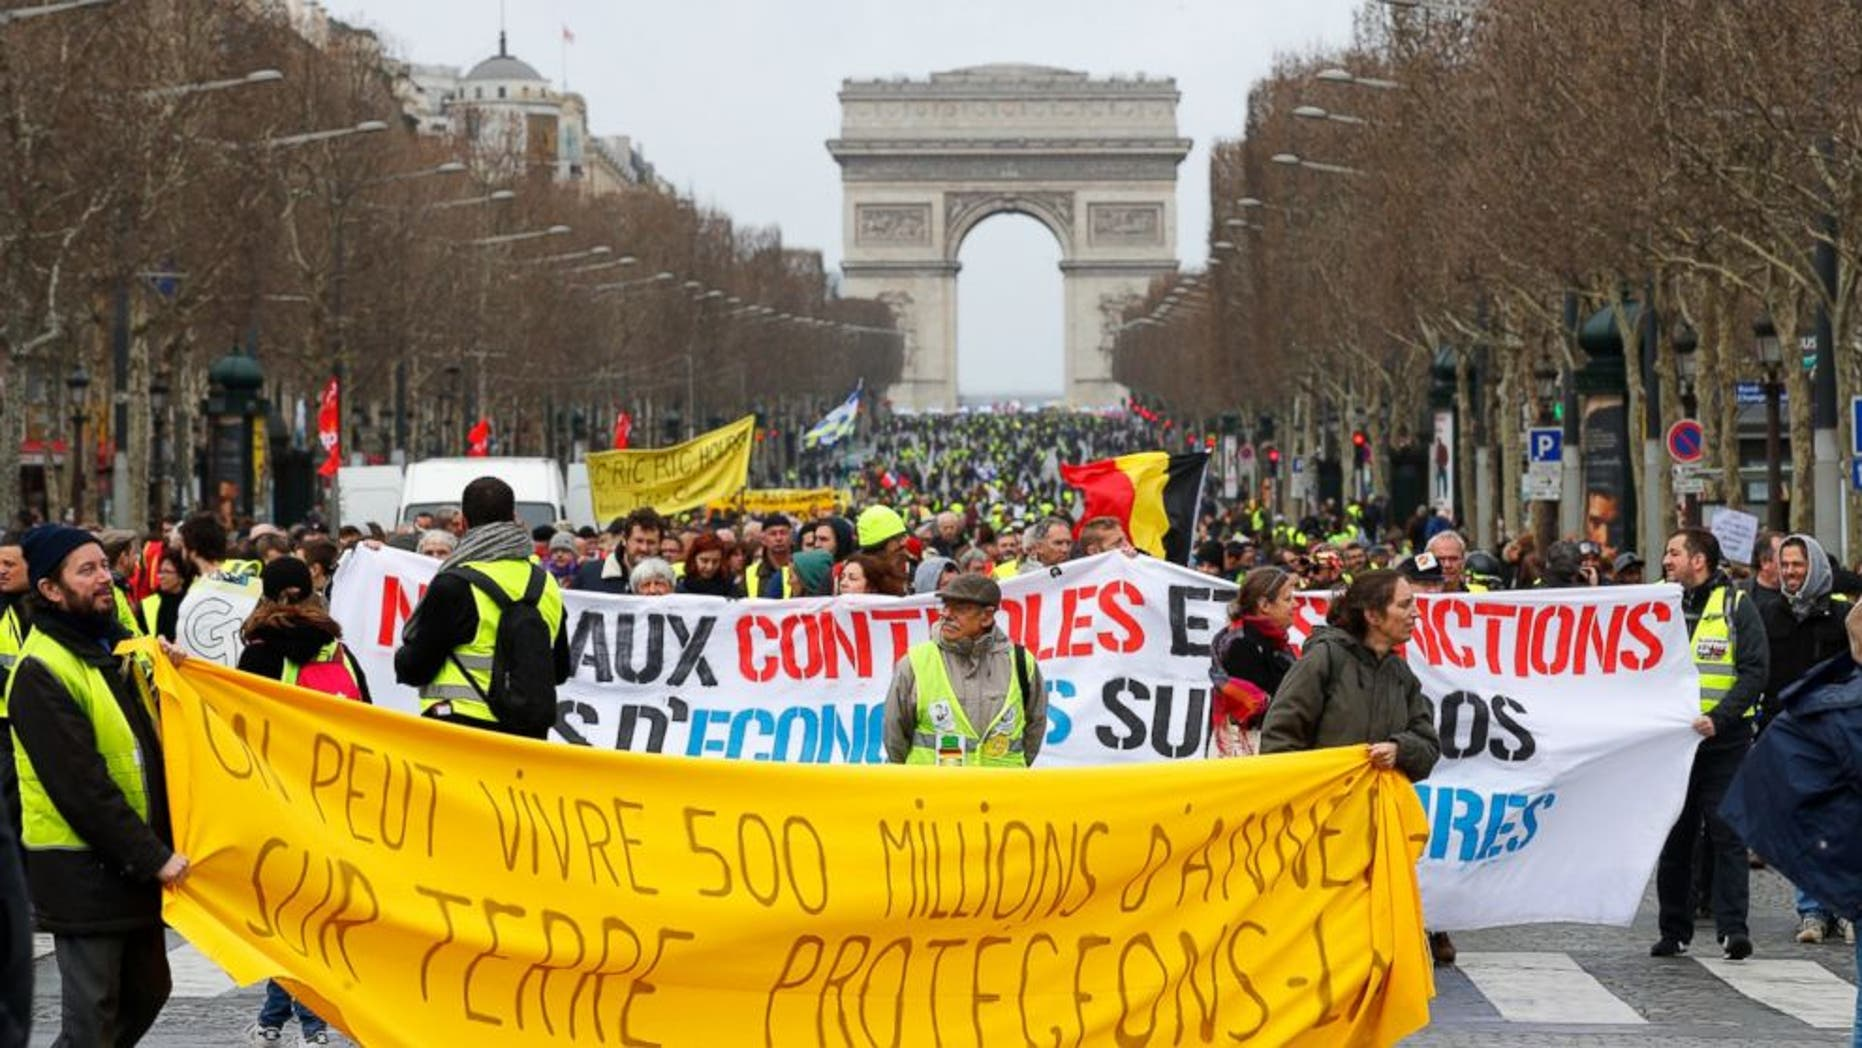 French Yellow Vest protesters gather at the Arc de Triomphe in Paris, Saturday, March 9, 2019. It was the 17th straight weekend or protests in Paris and other cities against the government's economic policies, which are seen as favoring the rich. French Yellow Vest protesters gather at the Arc de Triomphe in Paris, Saturday, March 9, 2019. It was the 17th straight weekend or protests in Paris and other cities against the government's economic policies, which are seen as favoring the rich .. <span> (AP Photo / Francois Mori) </span></p> </div> </div> </div> <p class=